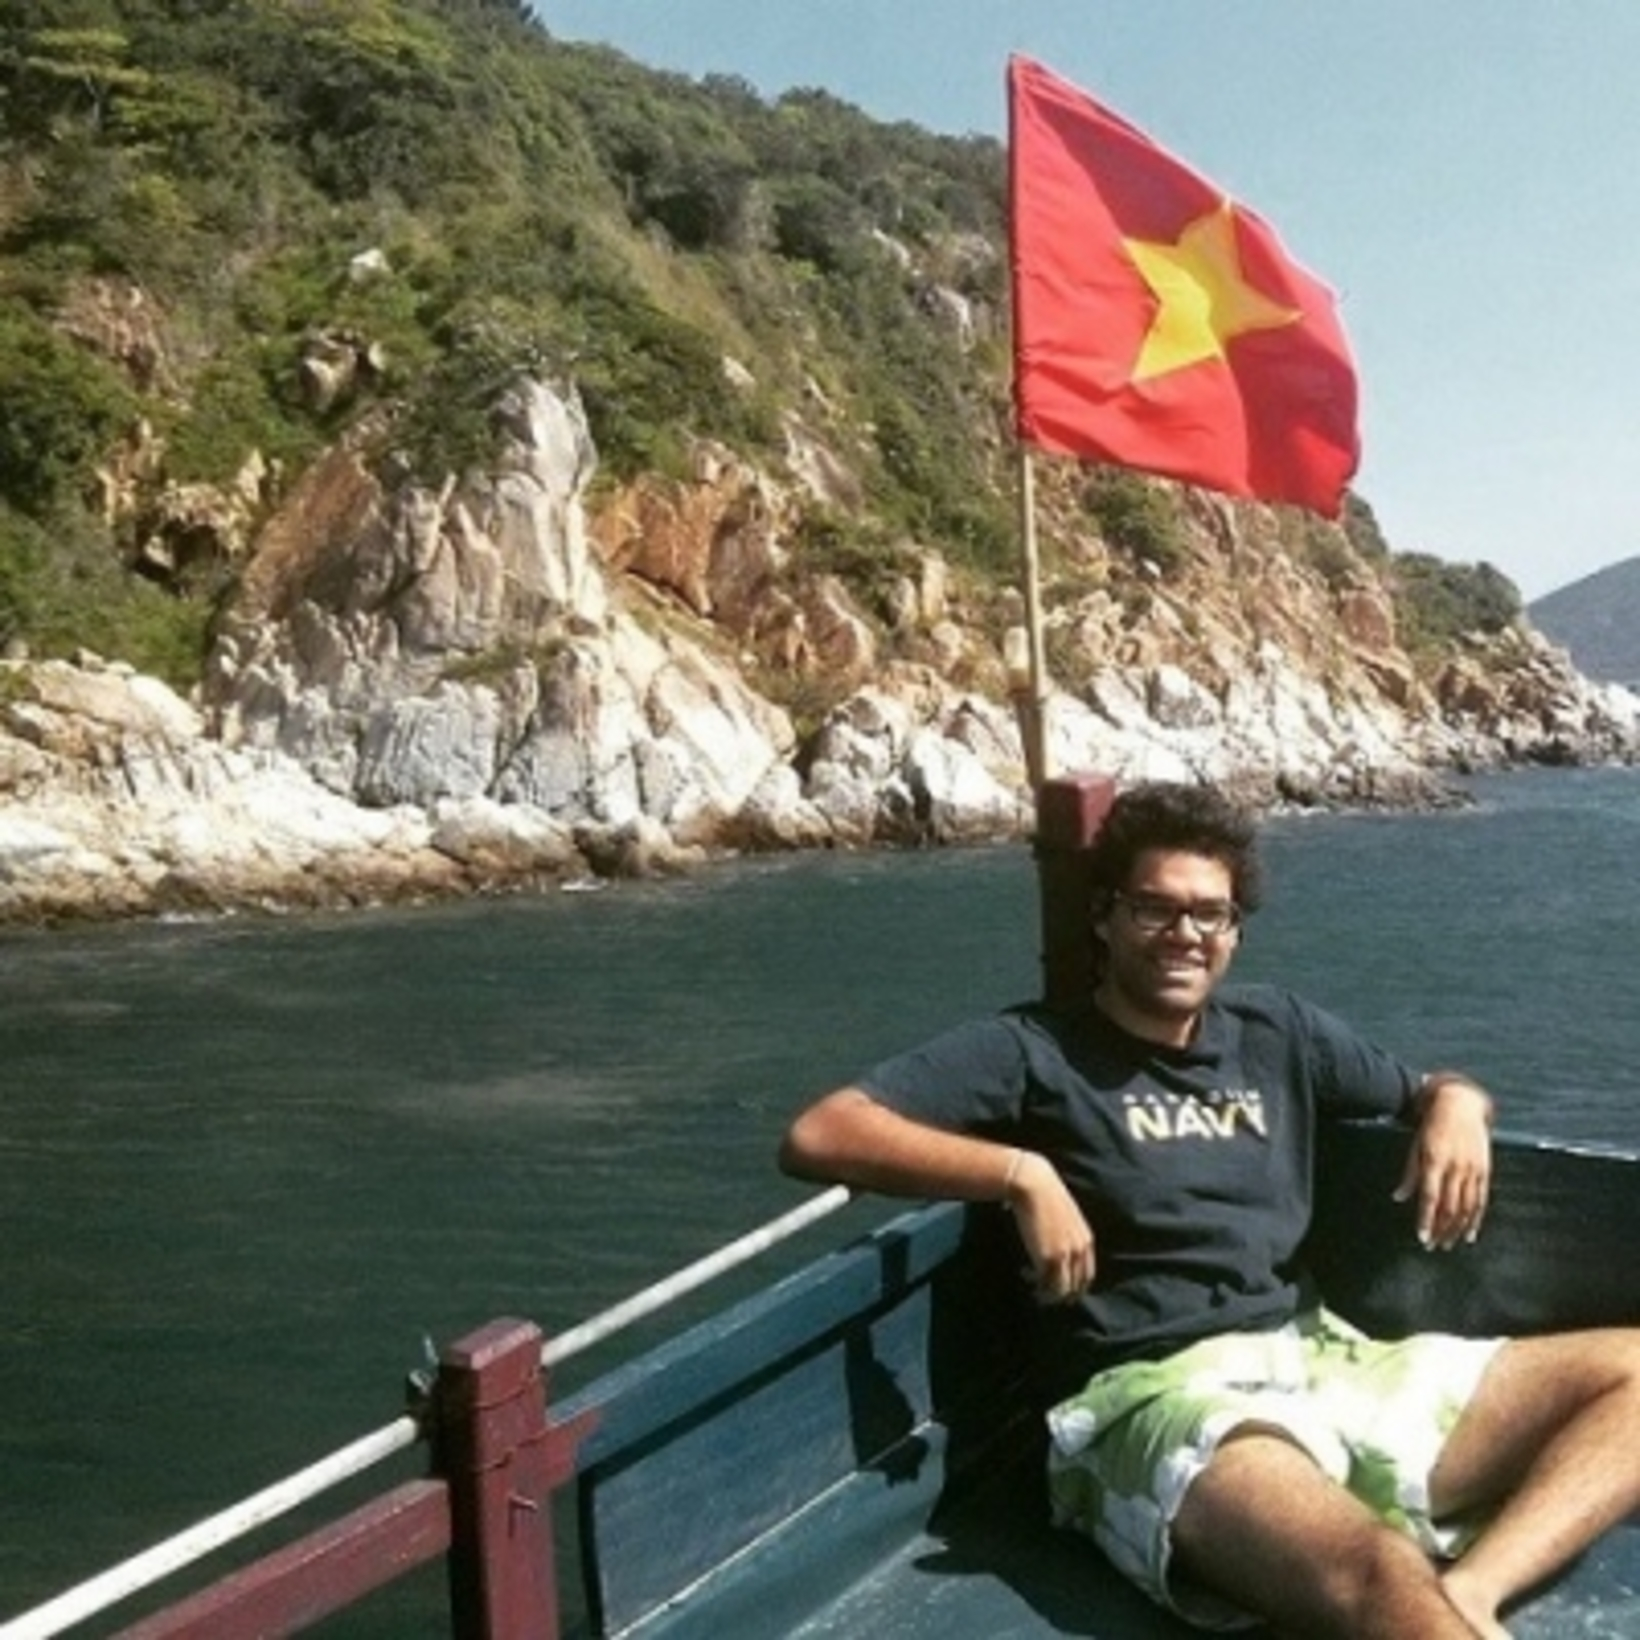 Andrew - The beauty of Vietnam lured me !!!